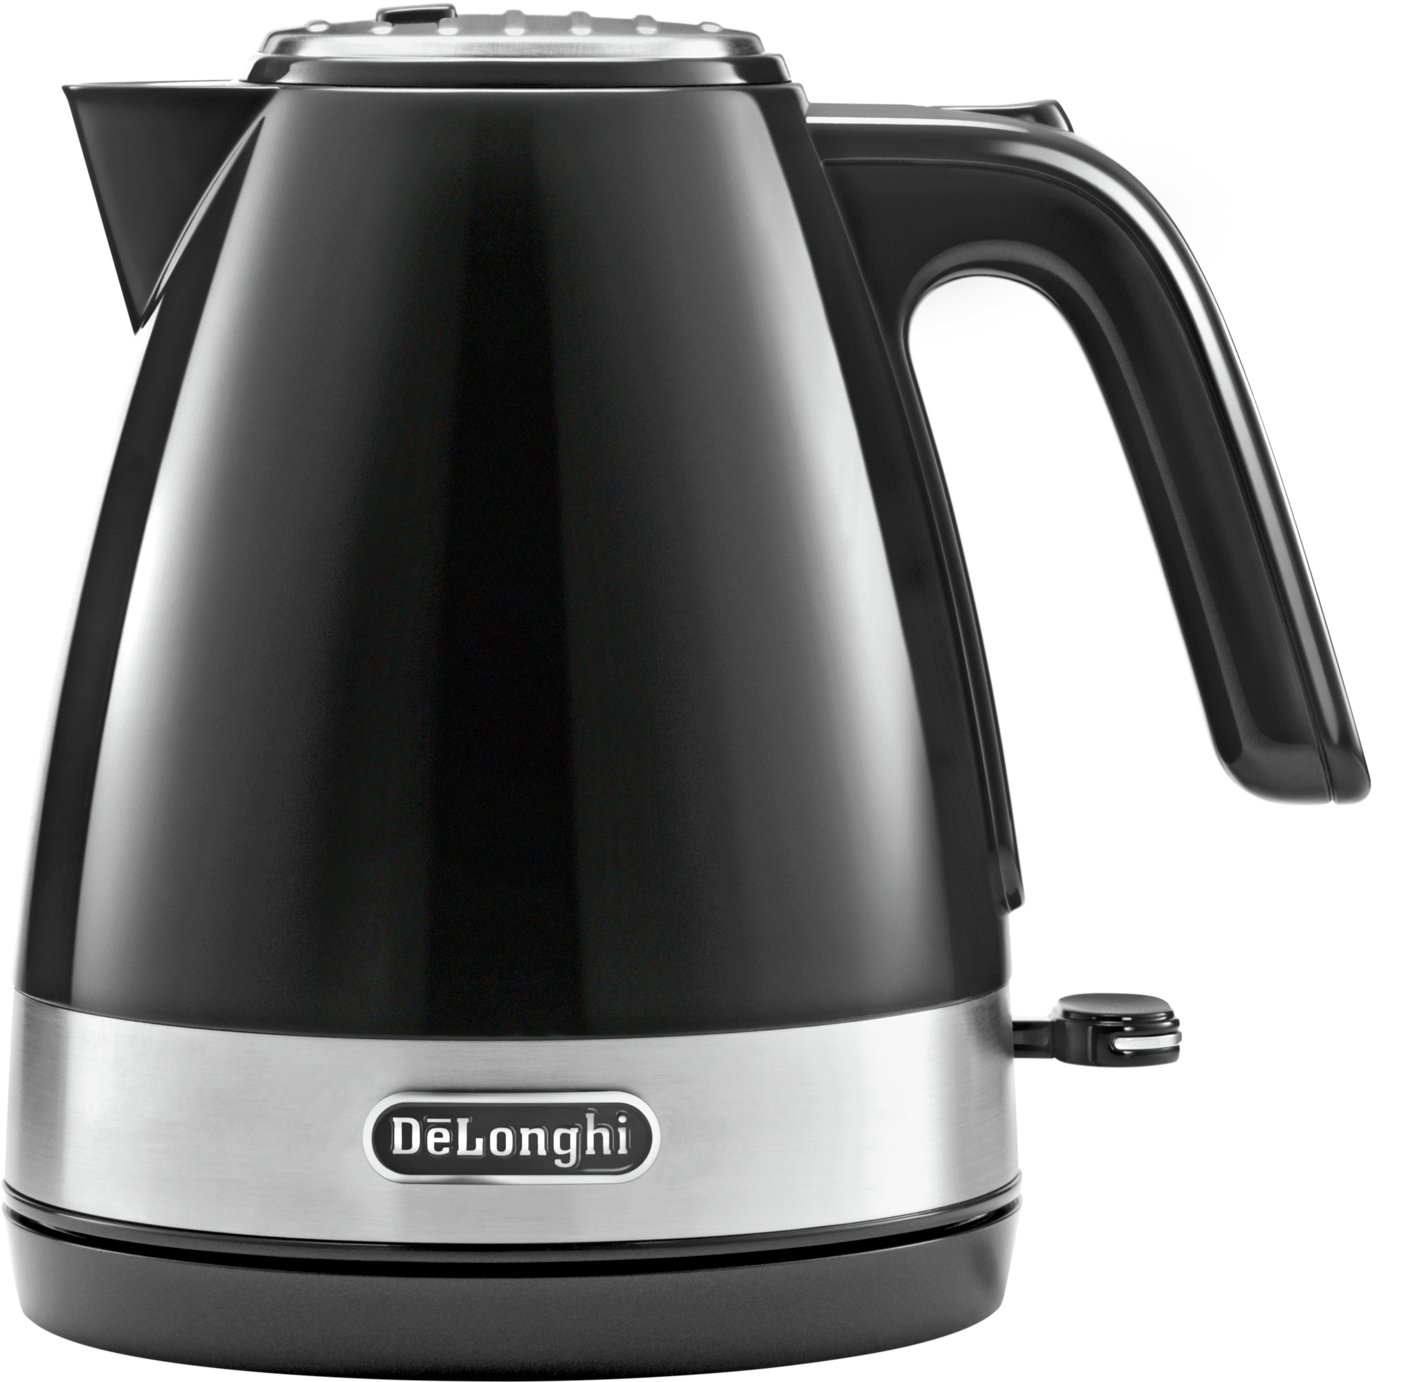 De'Longhi KBLA3001 Active Line Kettle - Black